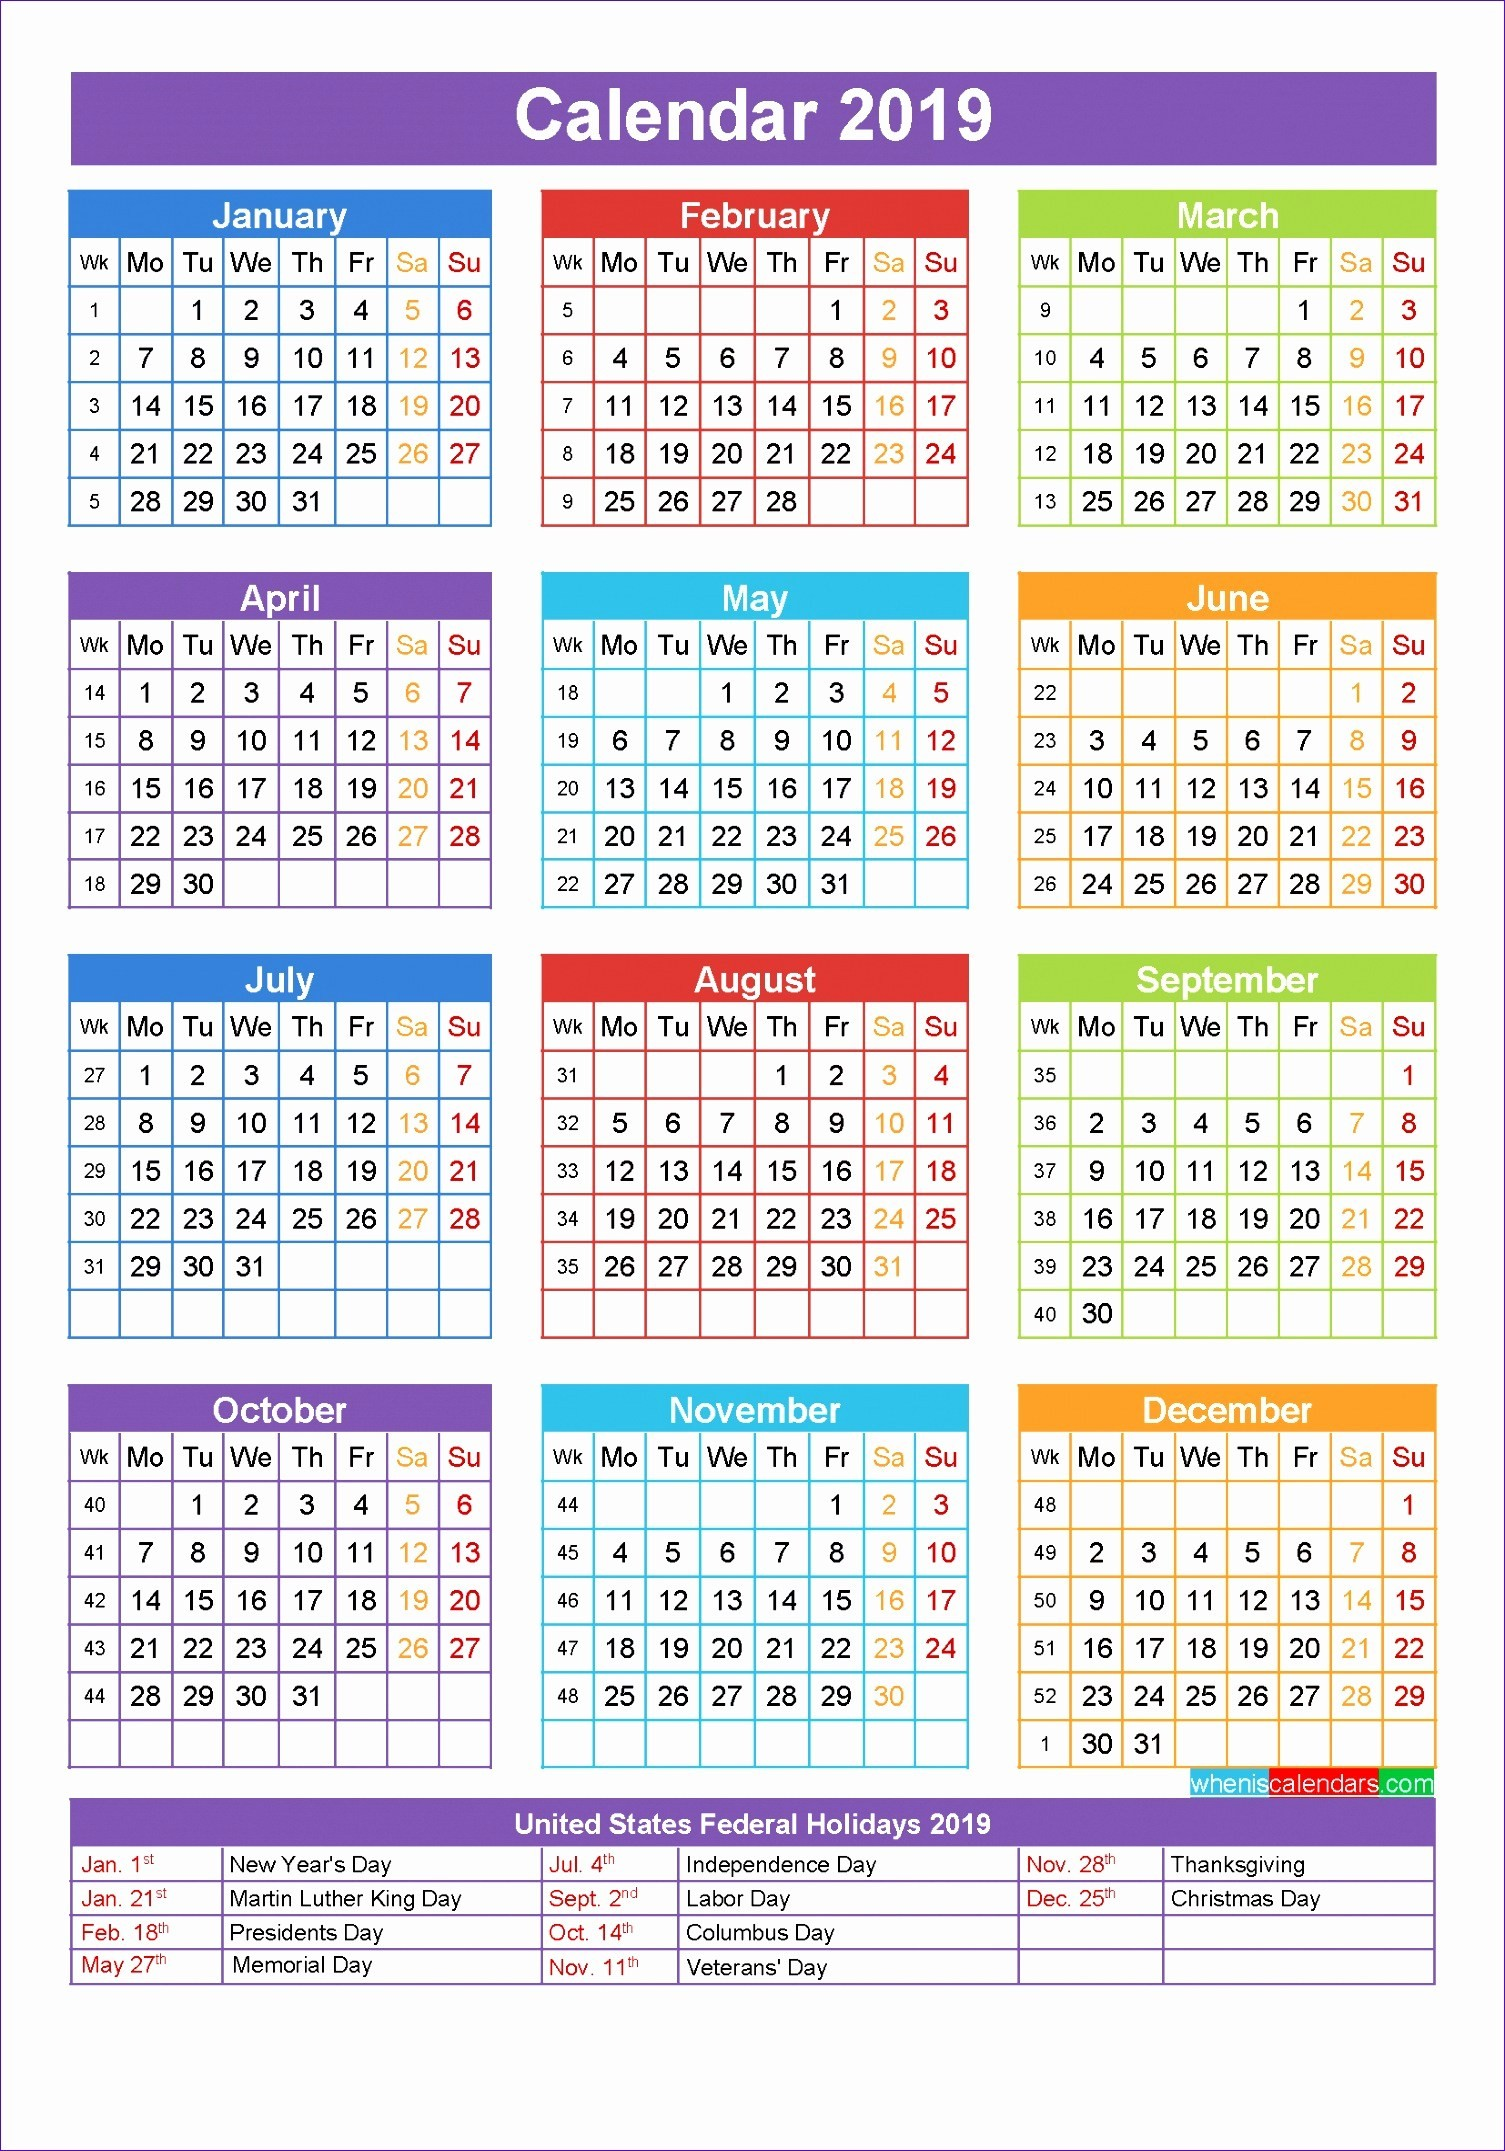 March 2019 Calendar Sri Lanka Más Recientemente Liberado 2019 Excel Calendar Template with Holidays Of March 2019 Calendar Sri Lanka Más Arriba-a-fecha Sri Lanka Permanent Mission to the United Nations